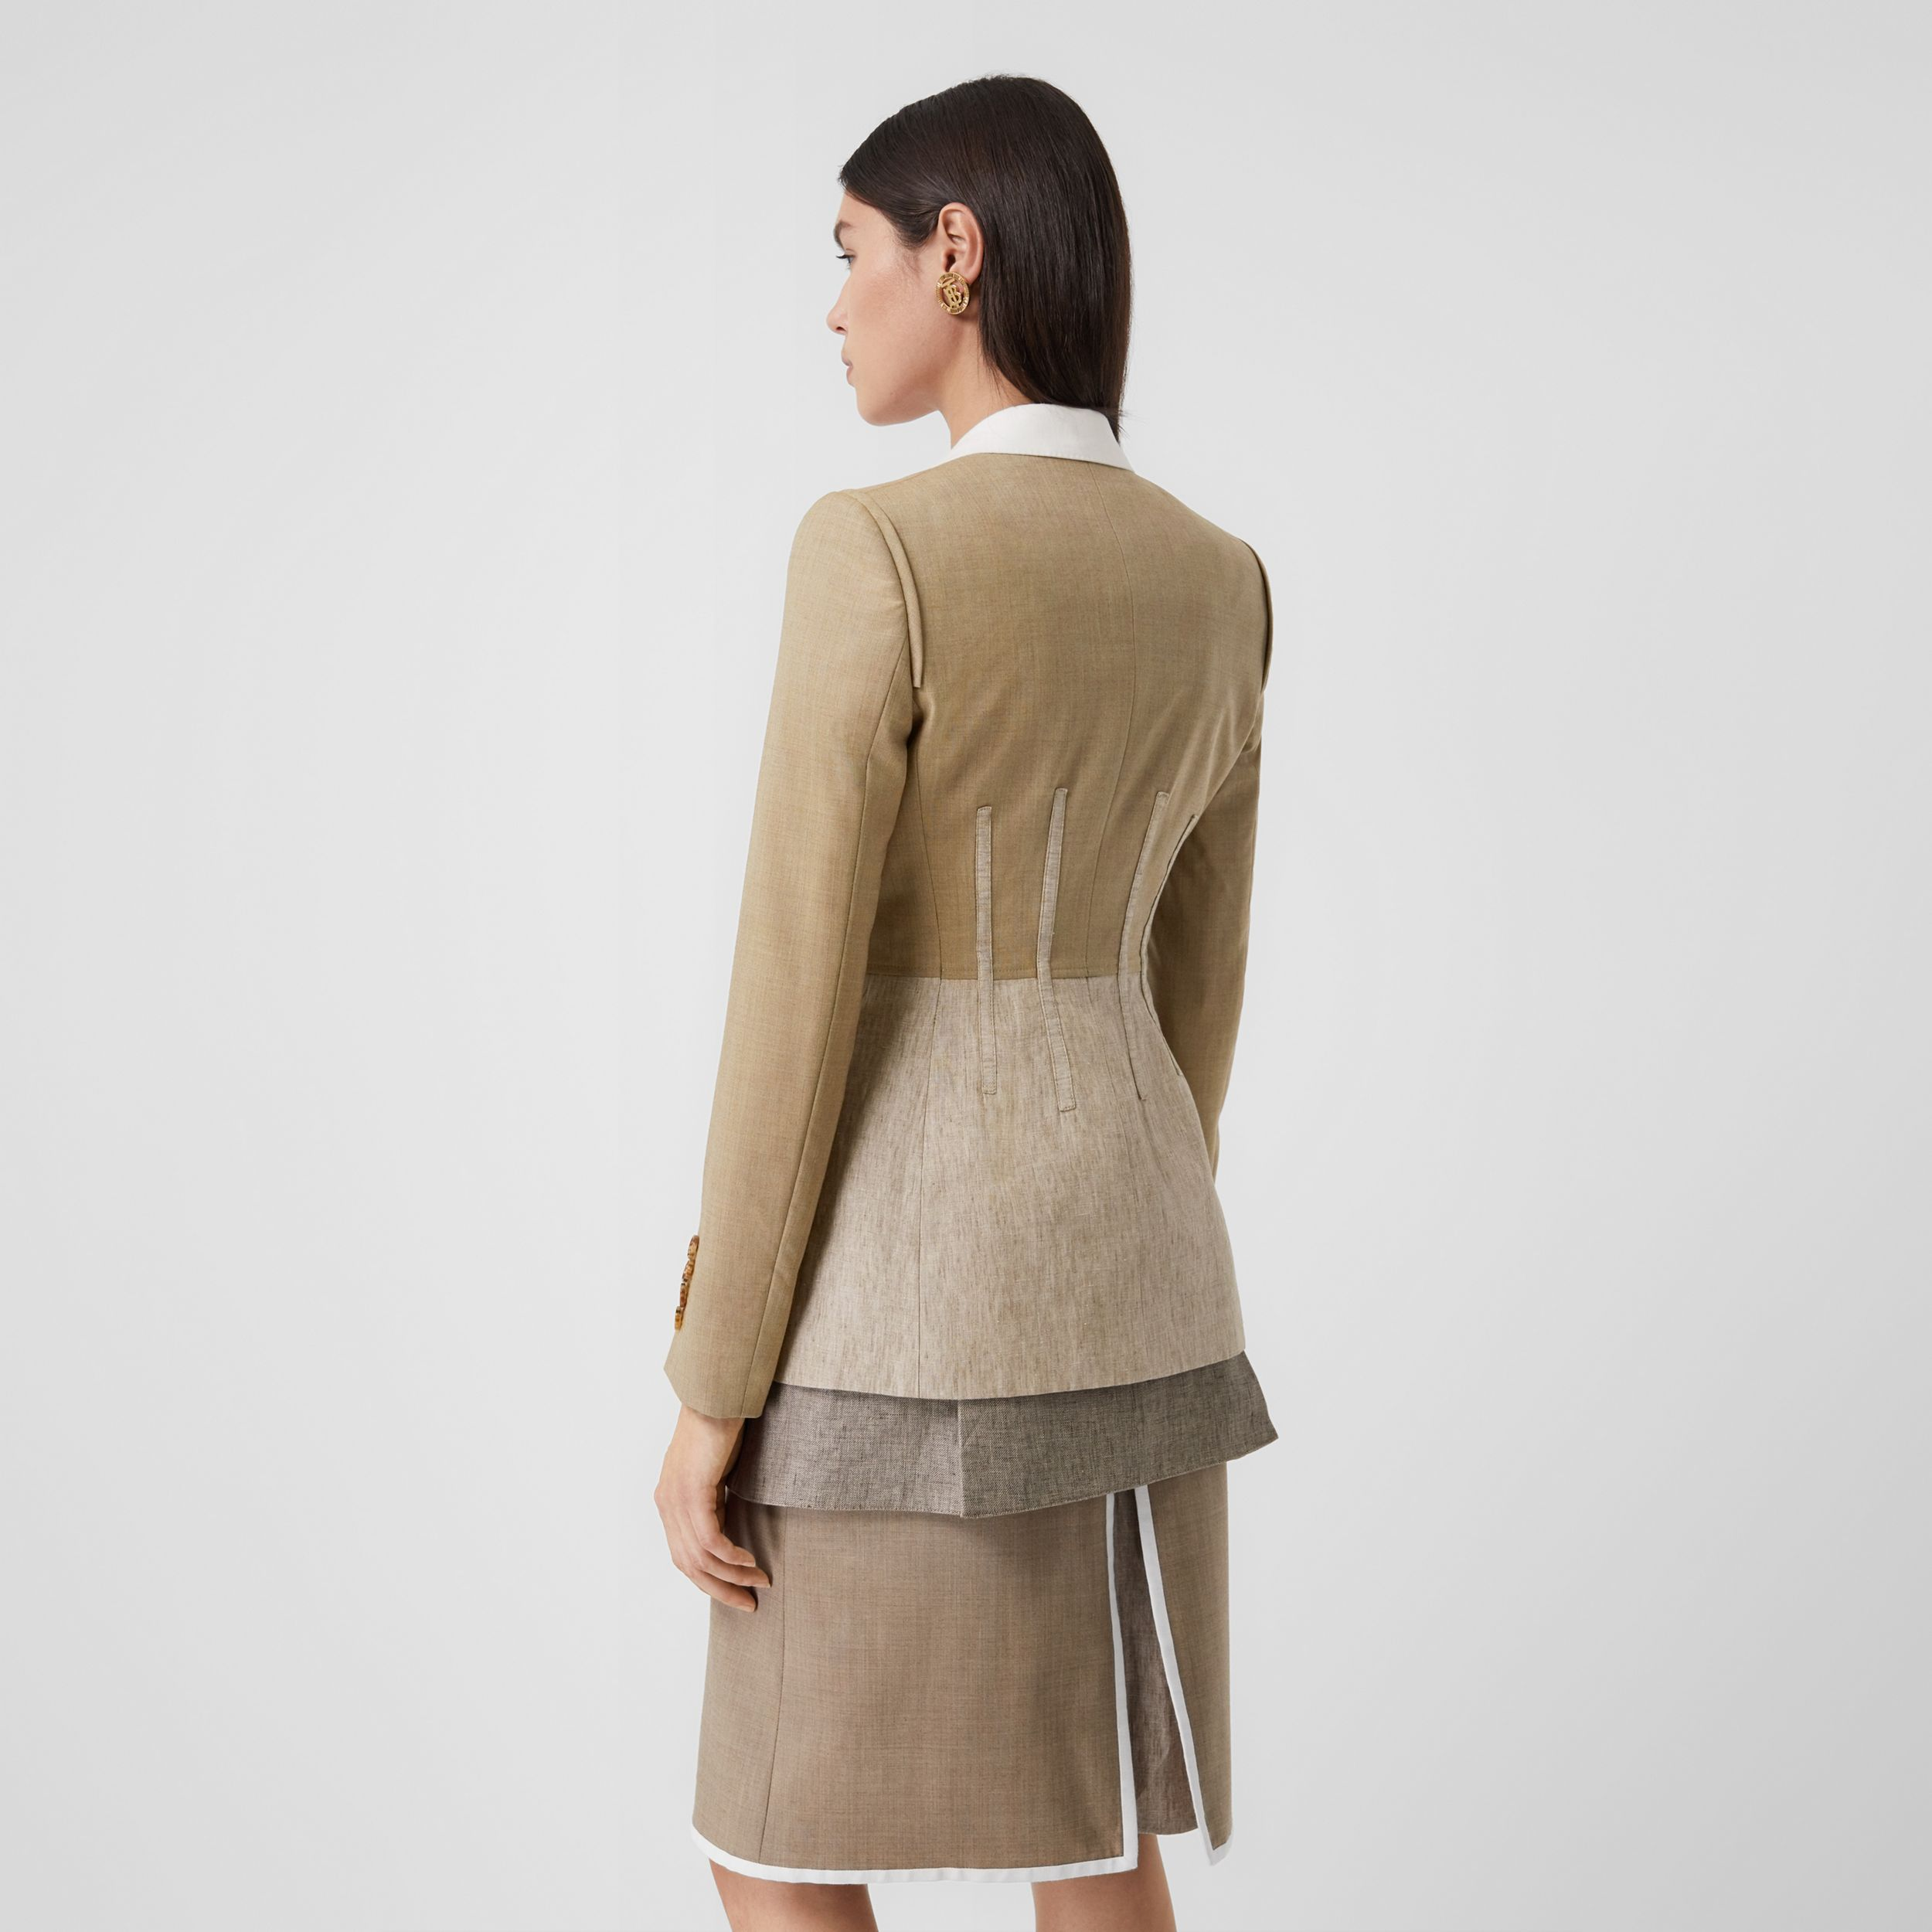 Contrast Seam Wool Cashmere and Linen Blazer in Pecan Melange - Women | Burberry - 3